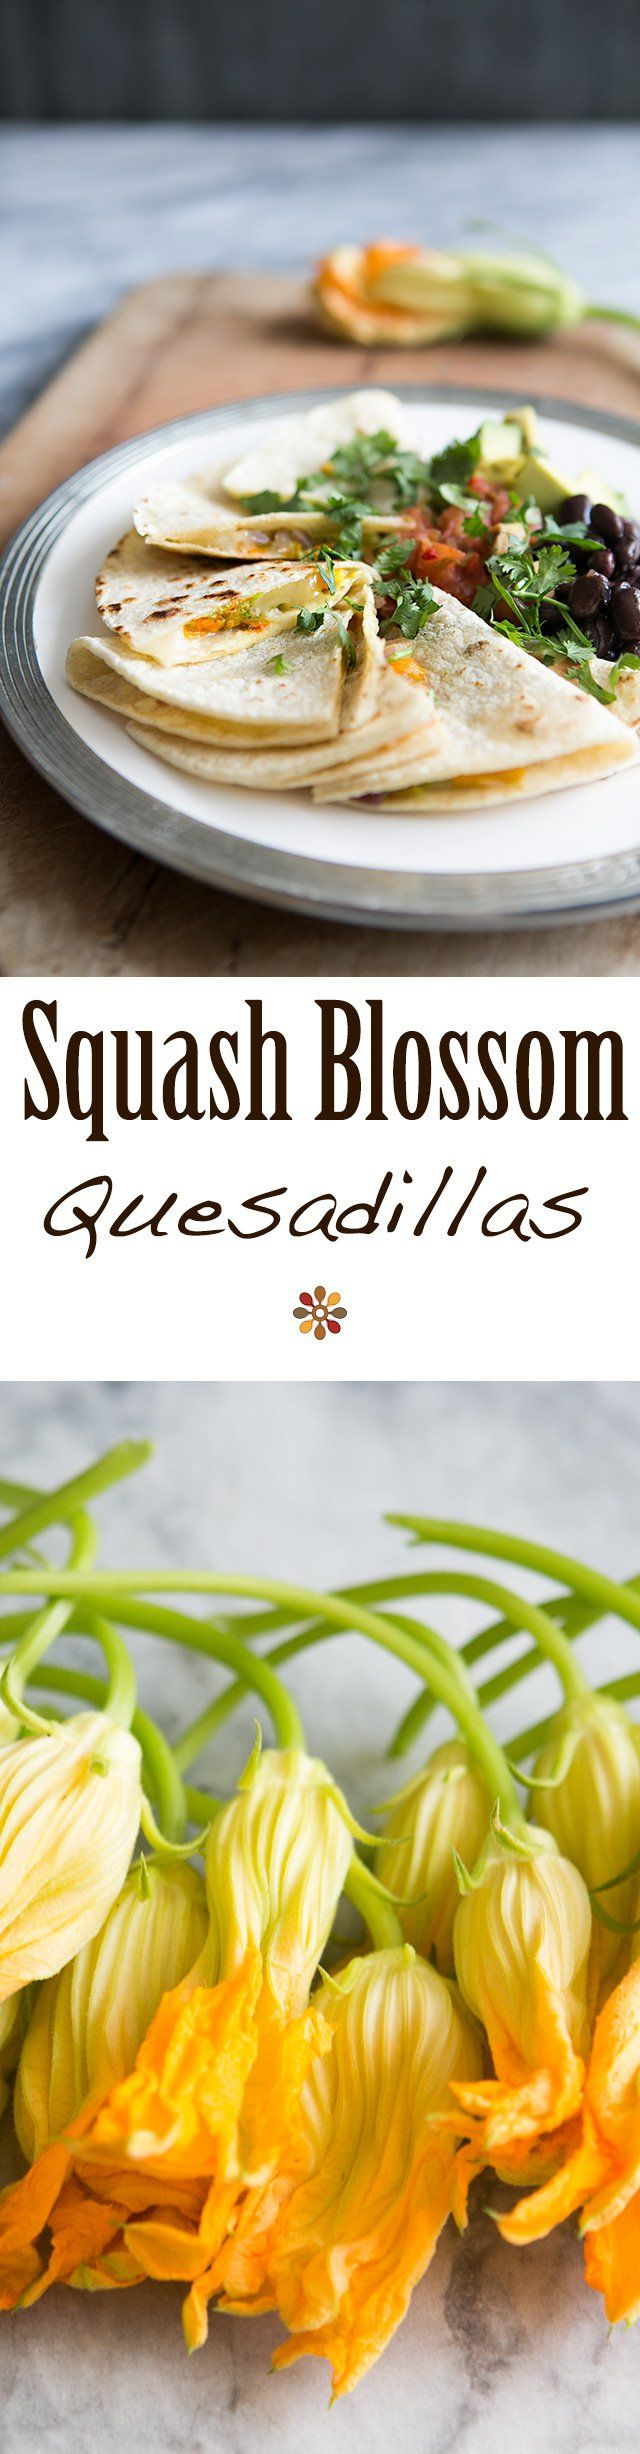 Squash on Pinterest | Summer Squash, Pattypan Squash and Squashes